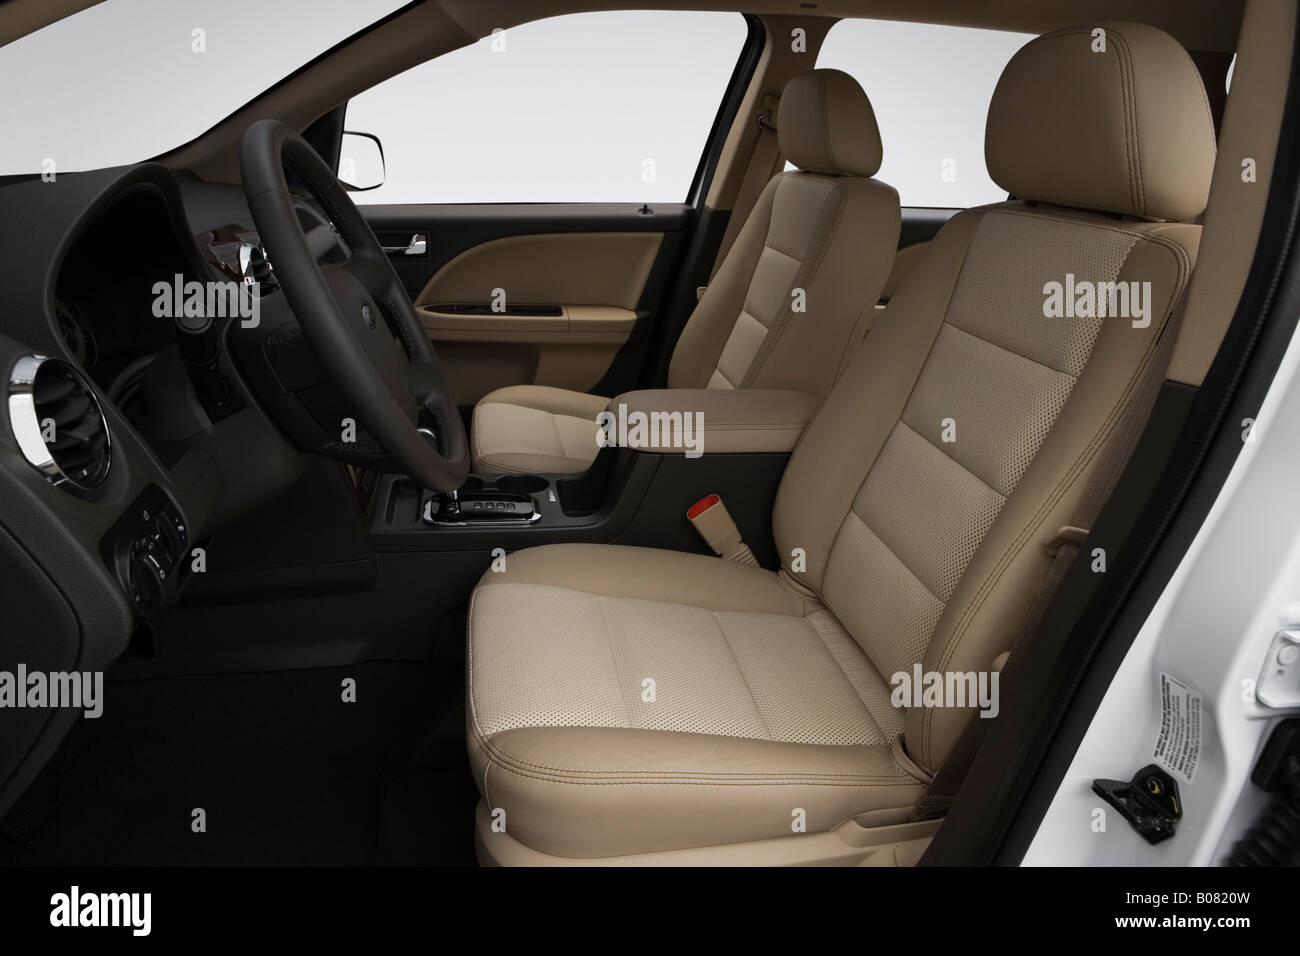 2008 ford taurus x eddie bauer in white front seats stock image